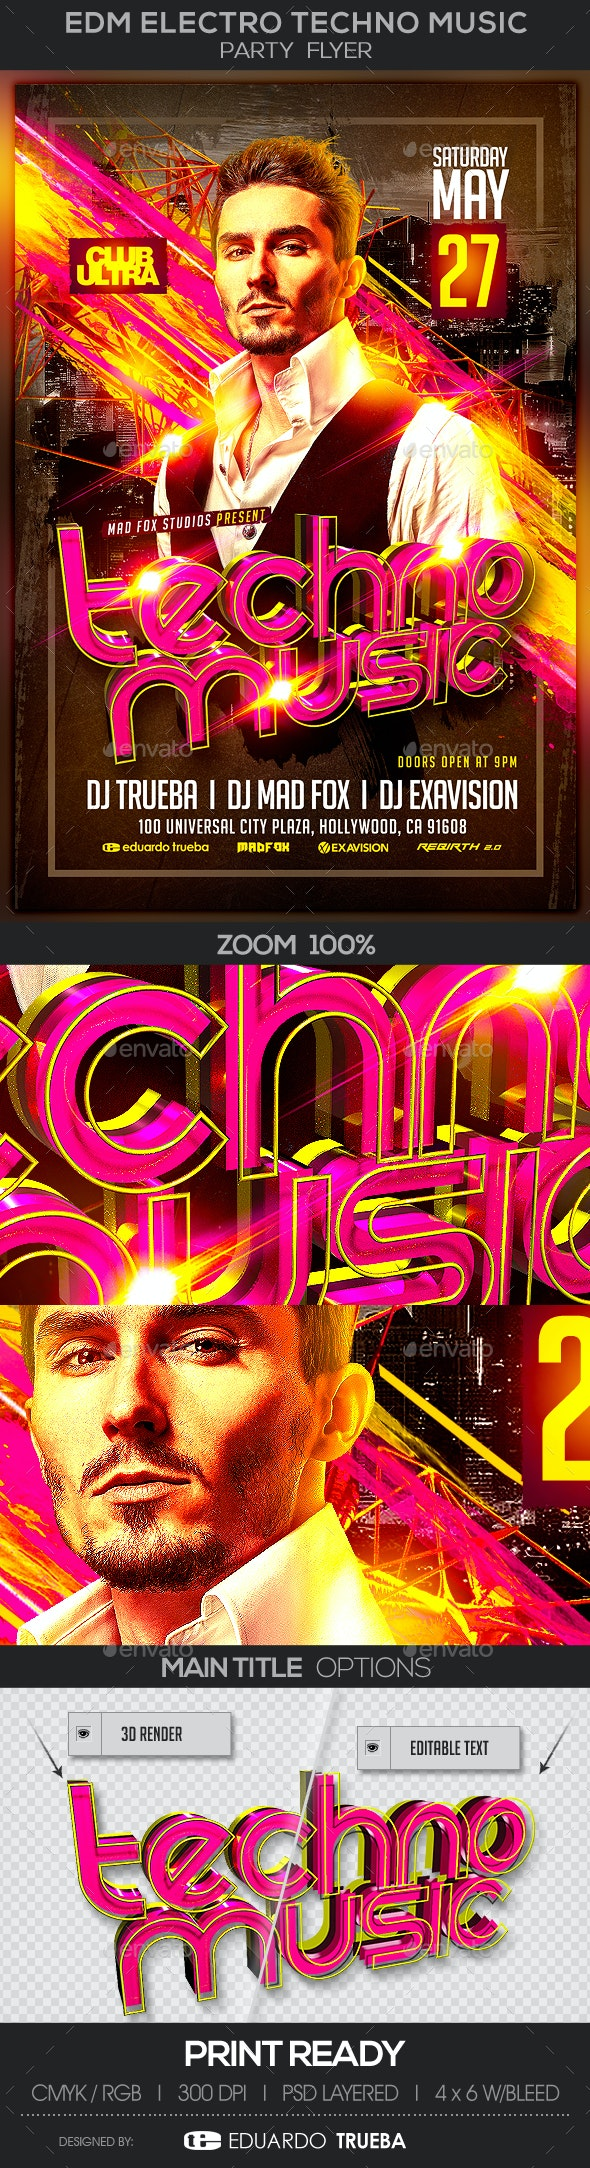 EDM Electro Techno Music Party Flyer - Clubs & Parties Events